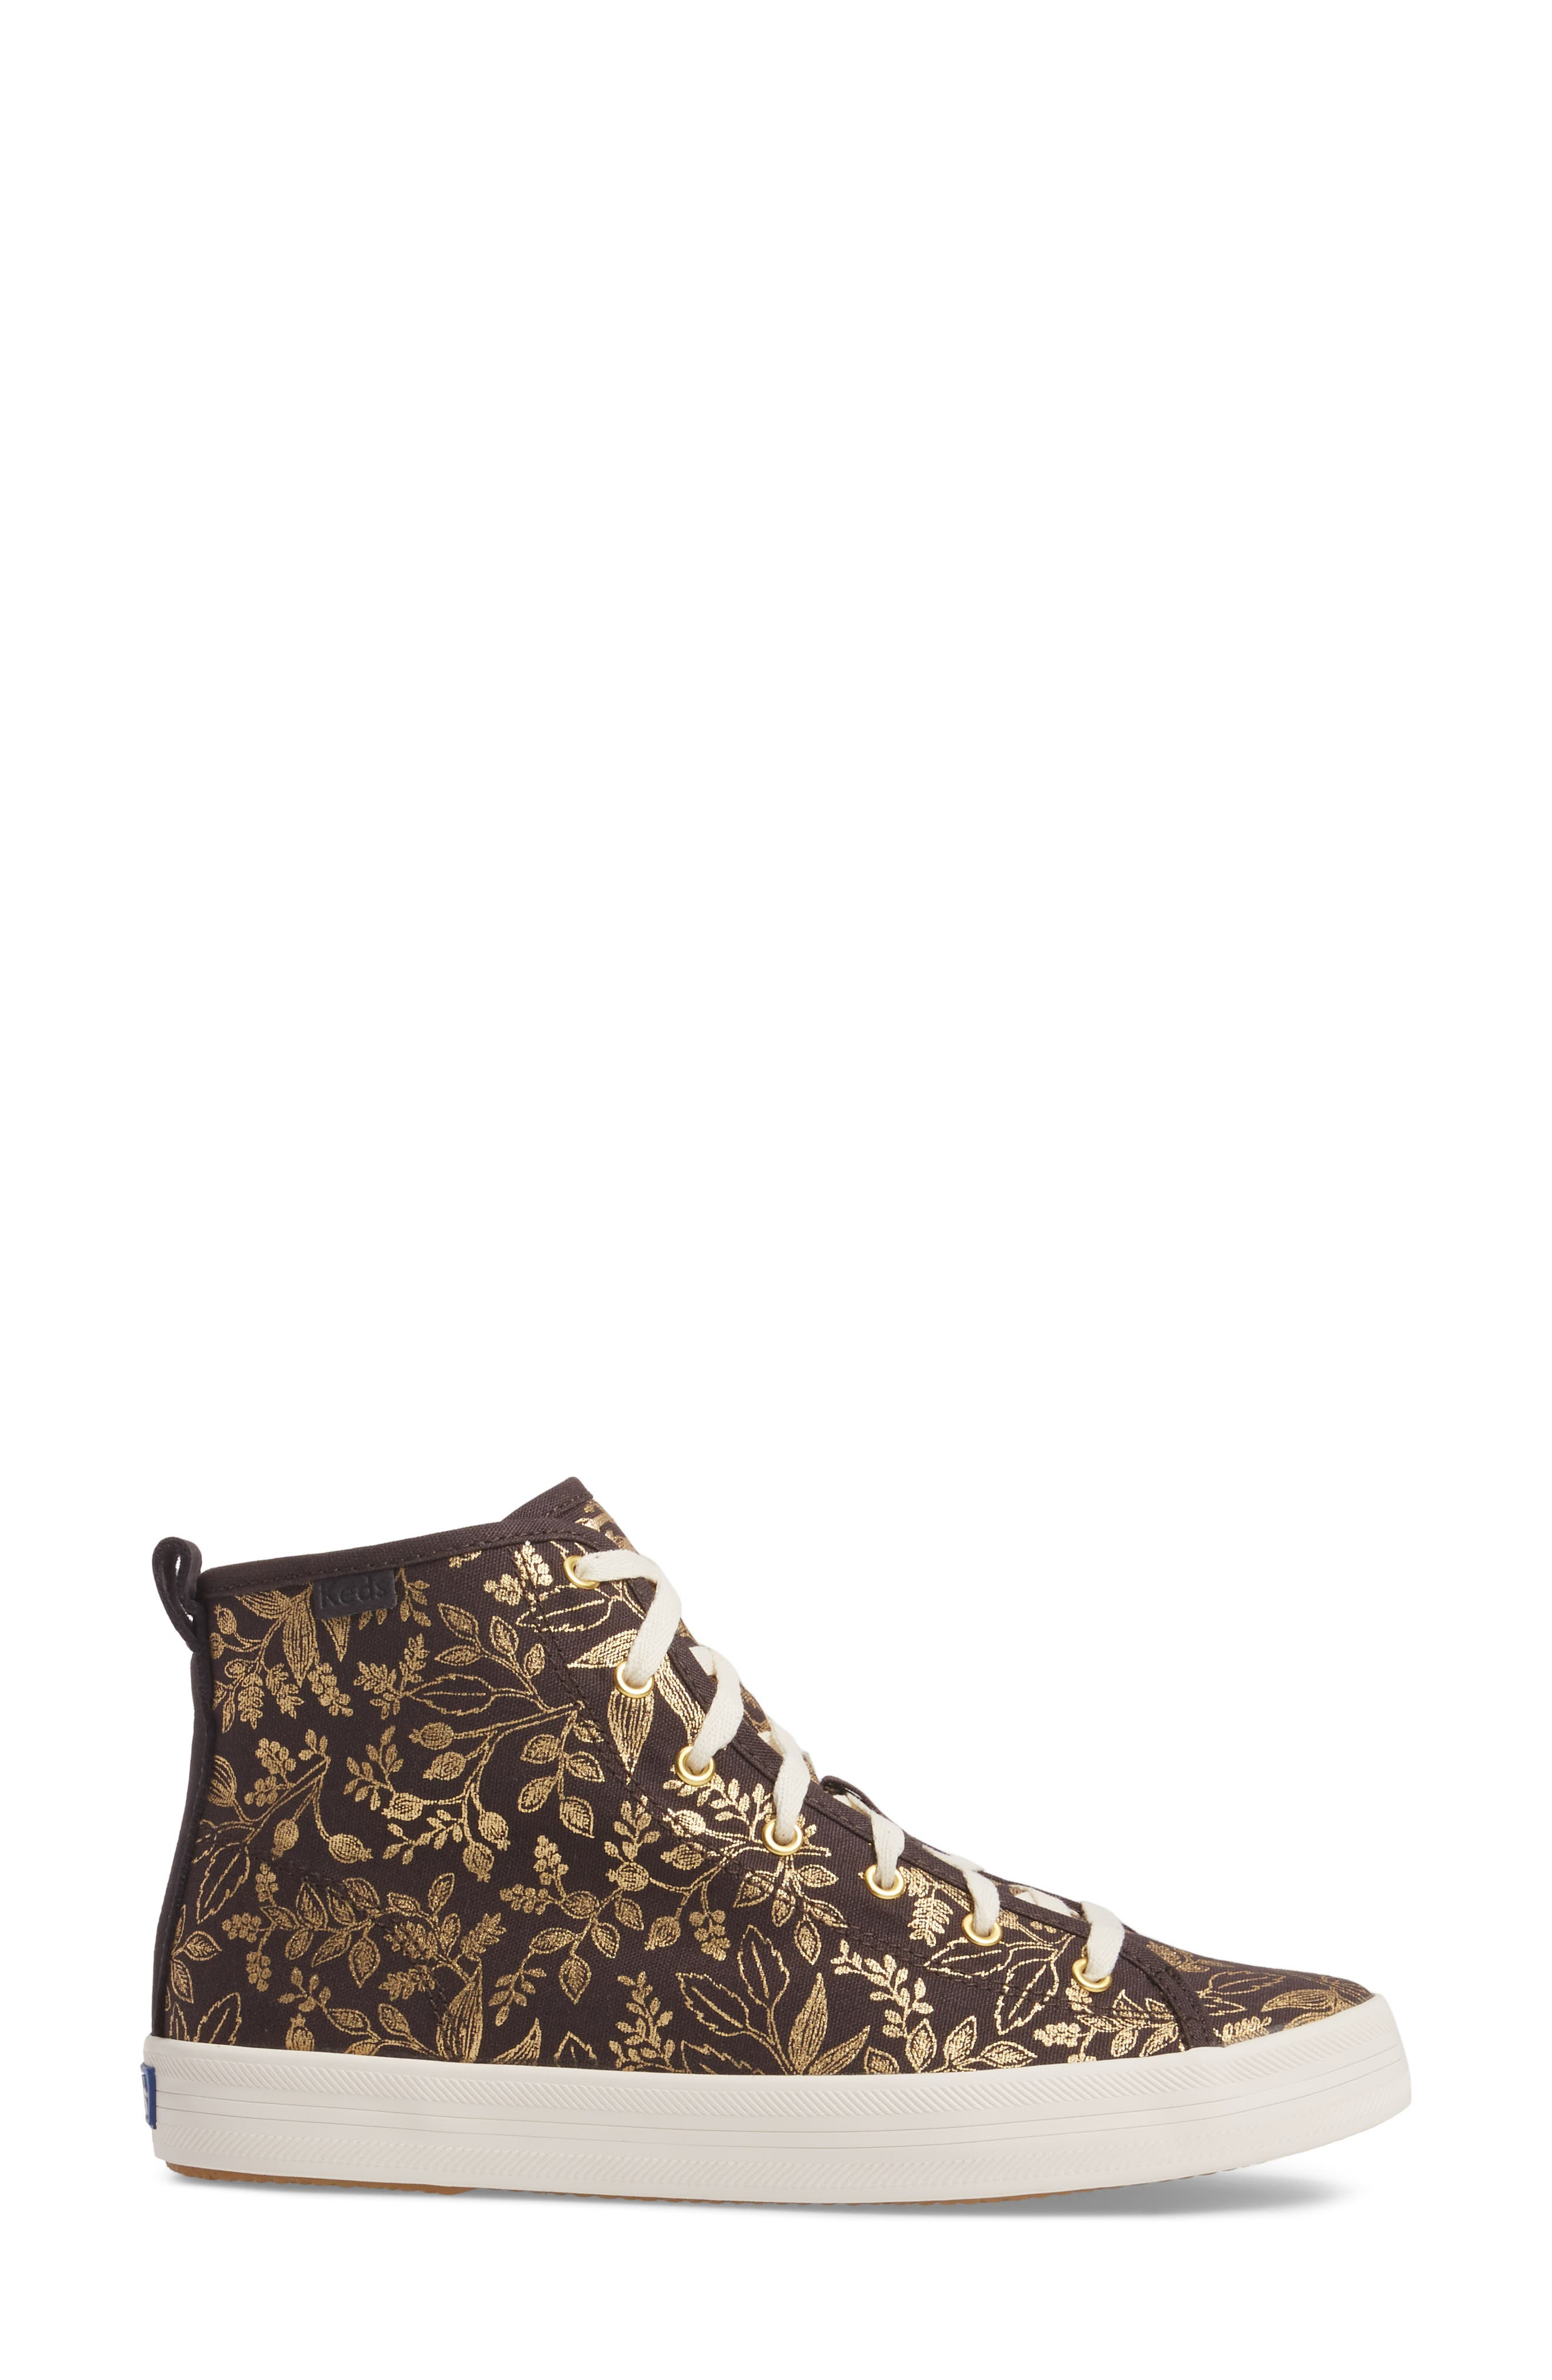 x Rifle Paper Co. Queen Anne High Top Sneaker,                             Alternate thumbnail 3, color,                             710